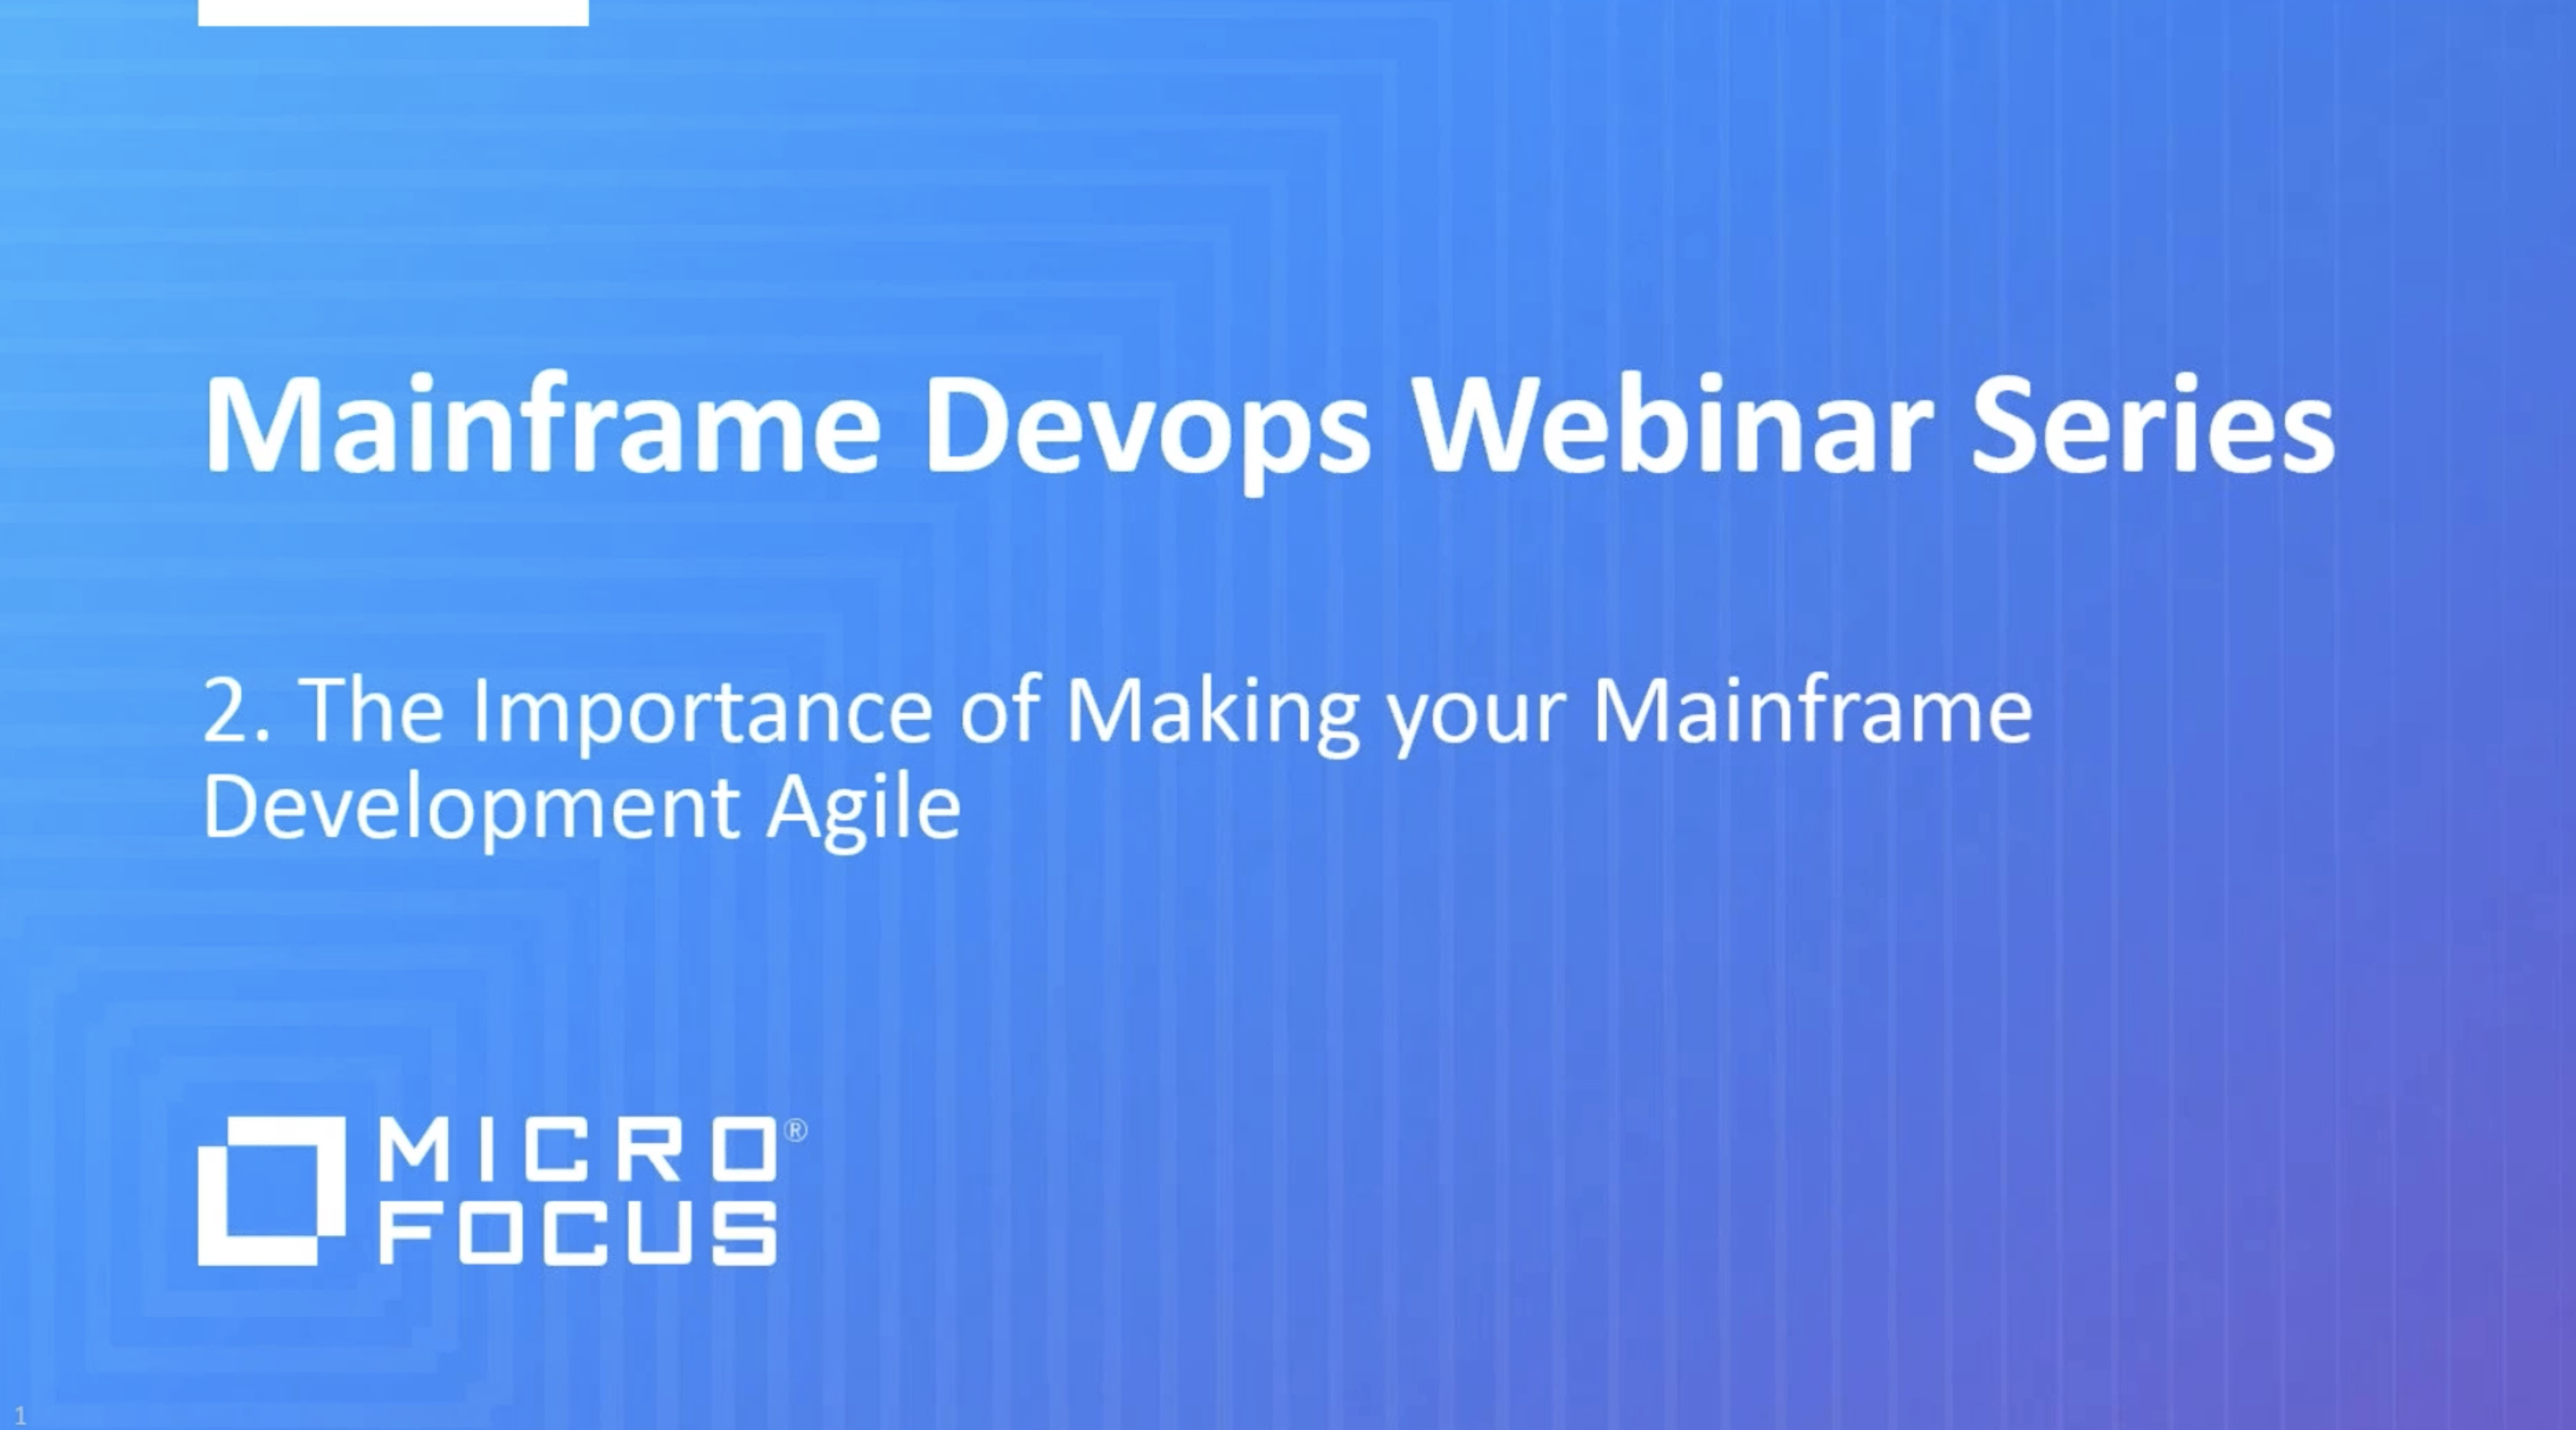 The Importance of Making your Mainframe Development Agile